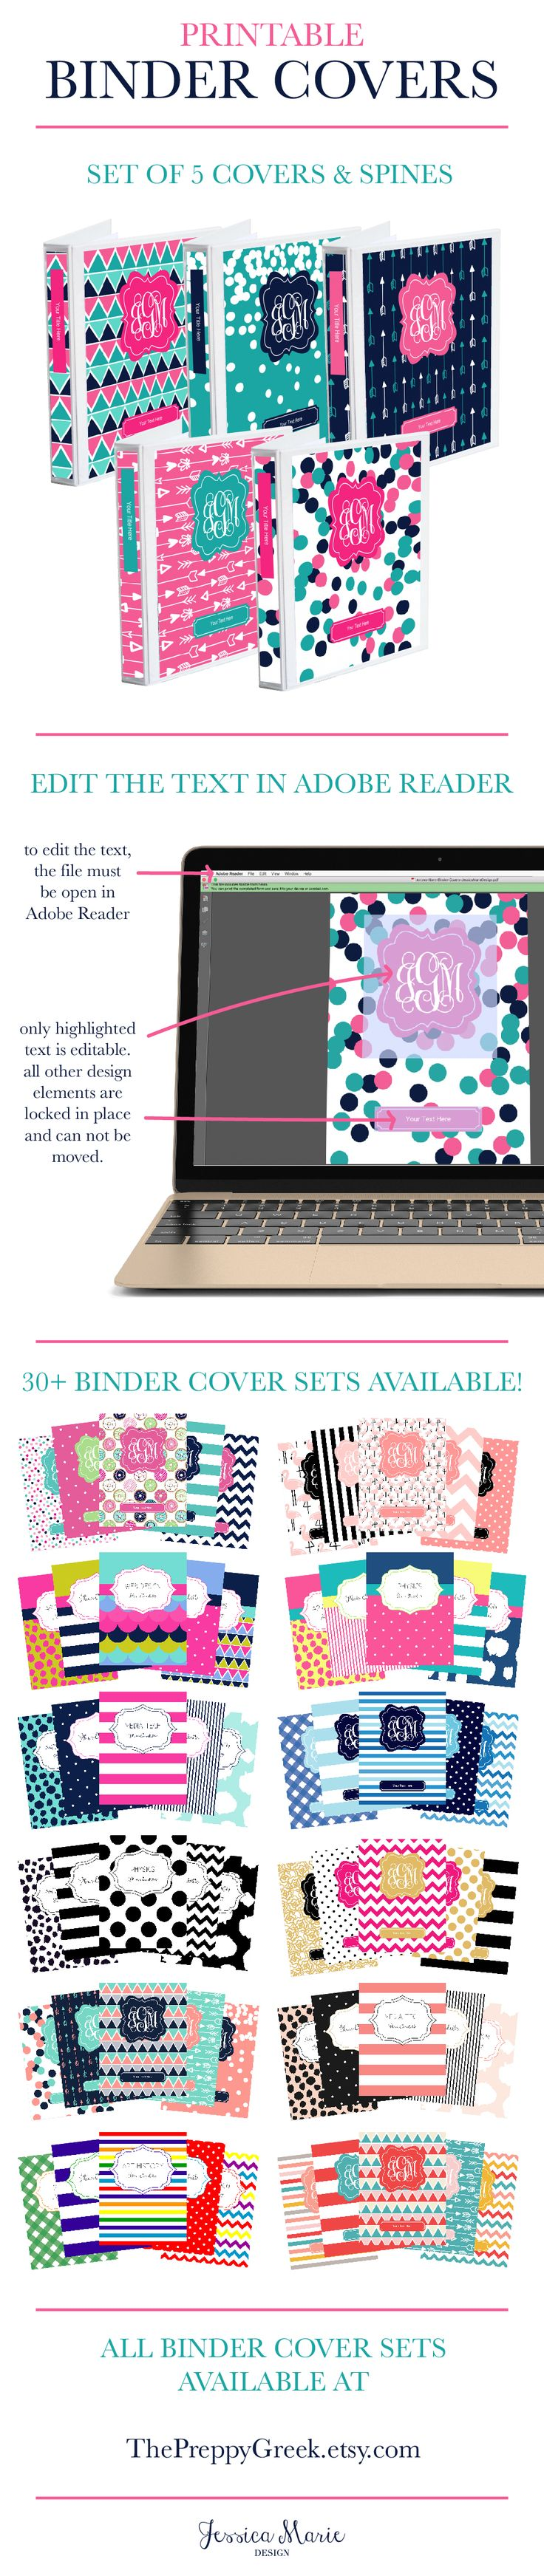 Are you ready to get organized? Printable Binder Covers are a perfect way to personalize and label your binders for school, life, and work! You can find a ton of different binder cover options at ThePreppyGreek.etsy.com